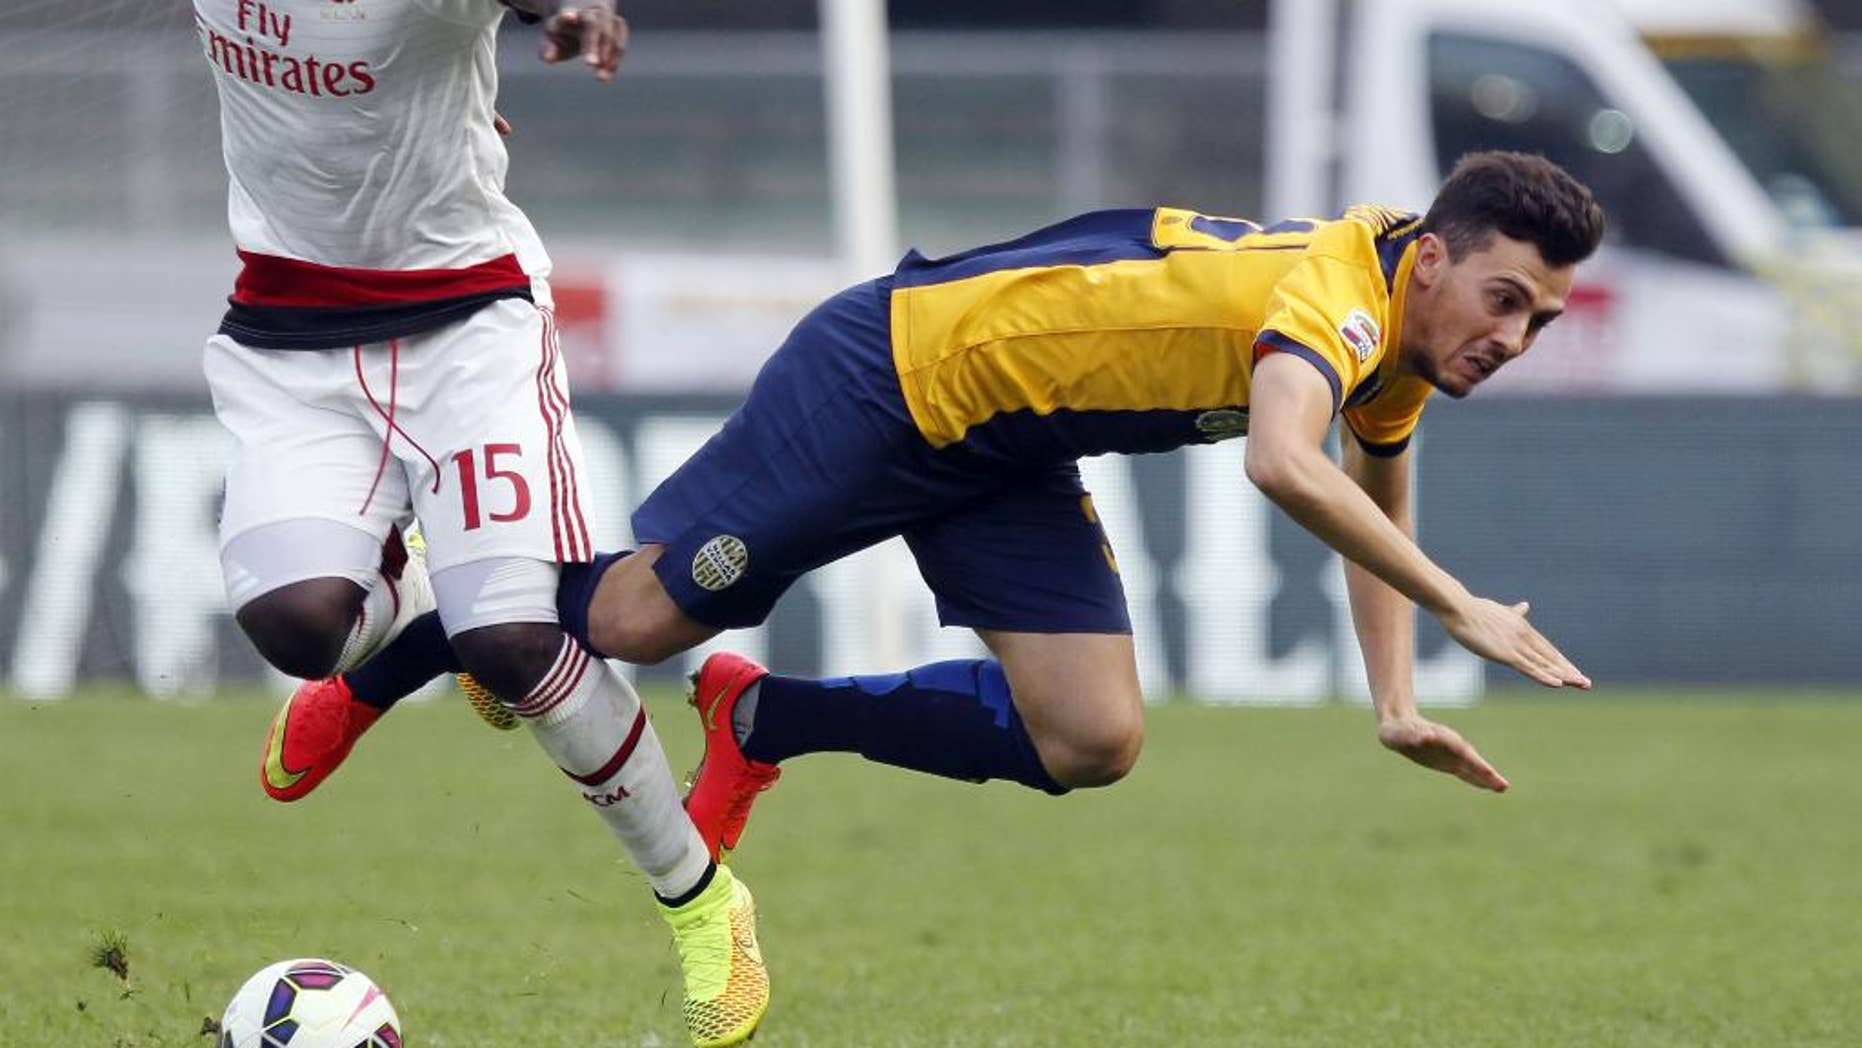 AC Milan's Michael Essien, left, fights for the ball with Hellas Verona's Gustavo Campanharo during a Serie A soccer match at the Bentegodi stadium in Verona, Italy, Sunday, Oct. 19, 2014. (AP Photo/Felice Calabro')